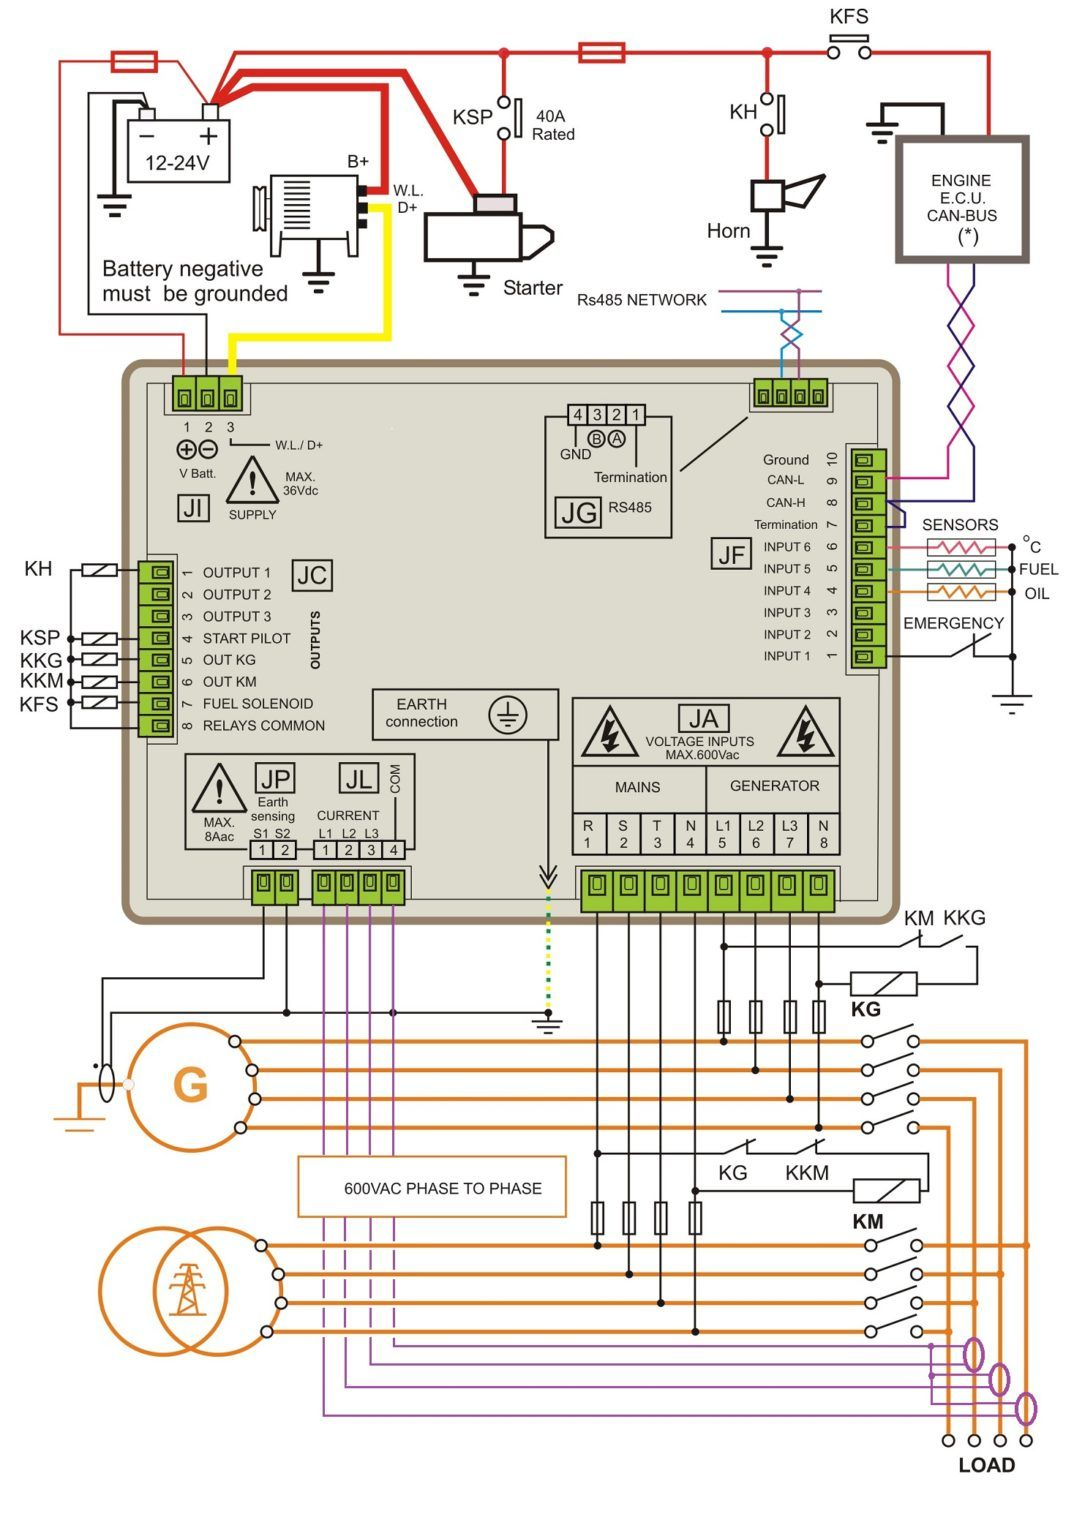 Pin By Steven Vassallo On Electrical Engineering Generator Transfer Switch Electrical Circuit Diagram Circuit Diagram